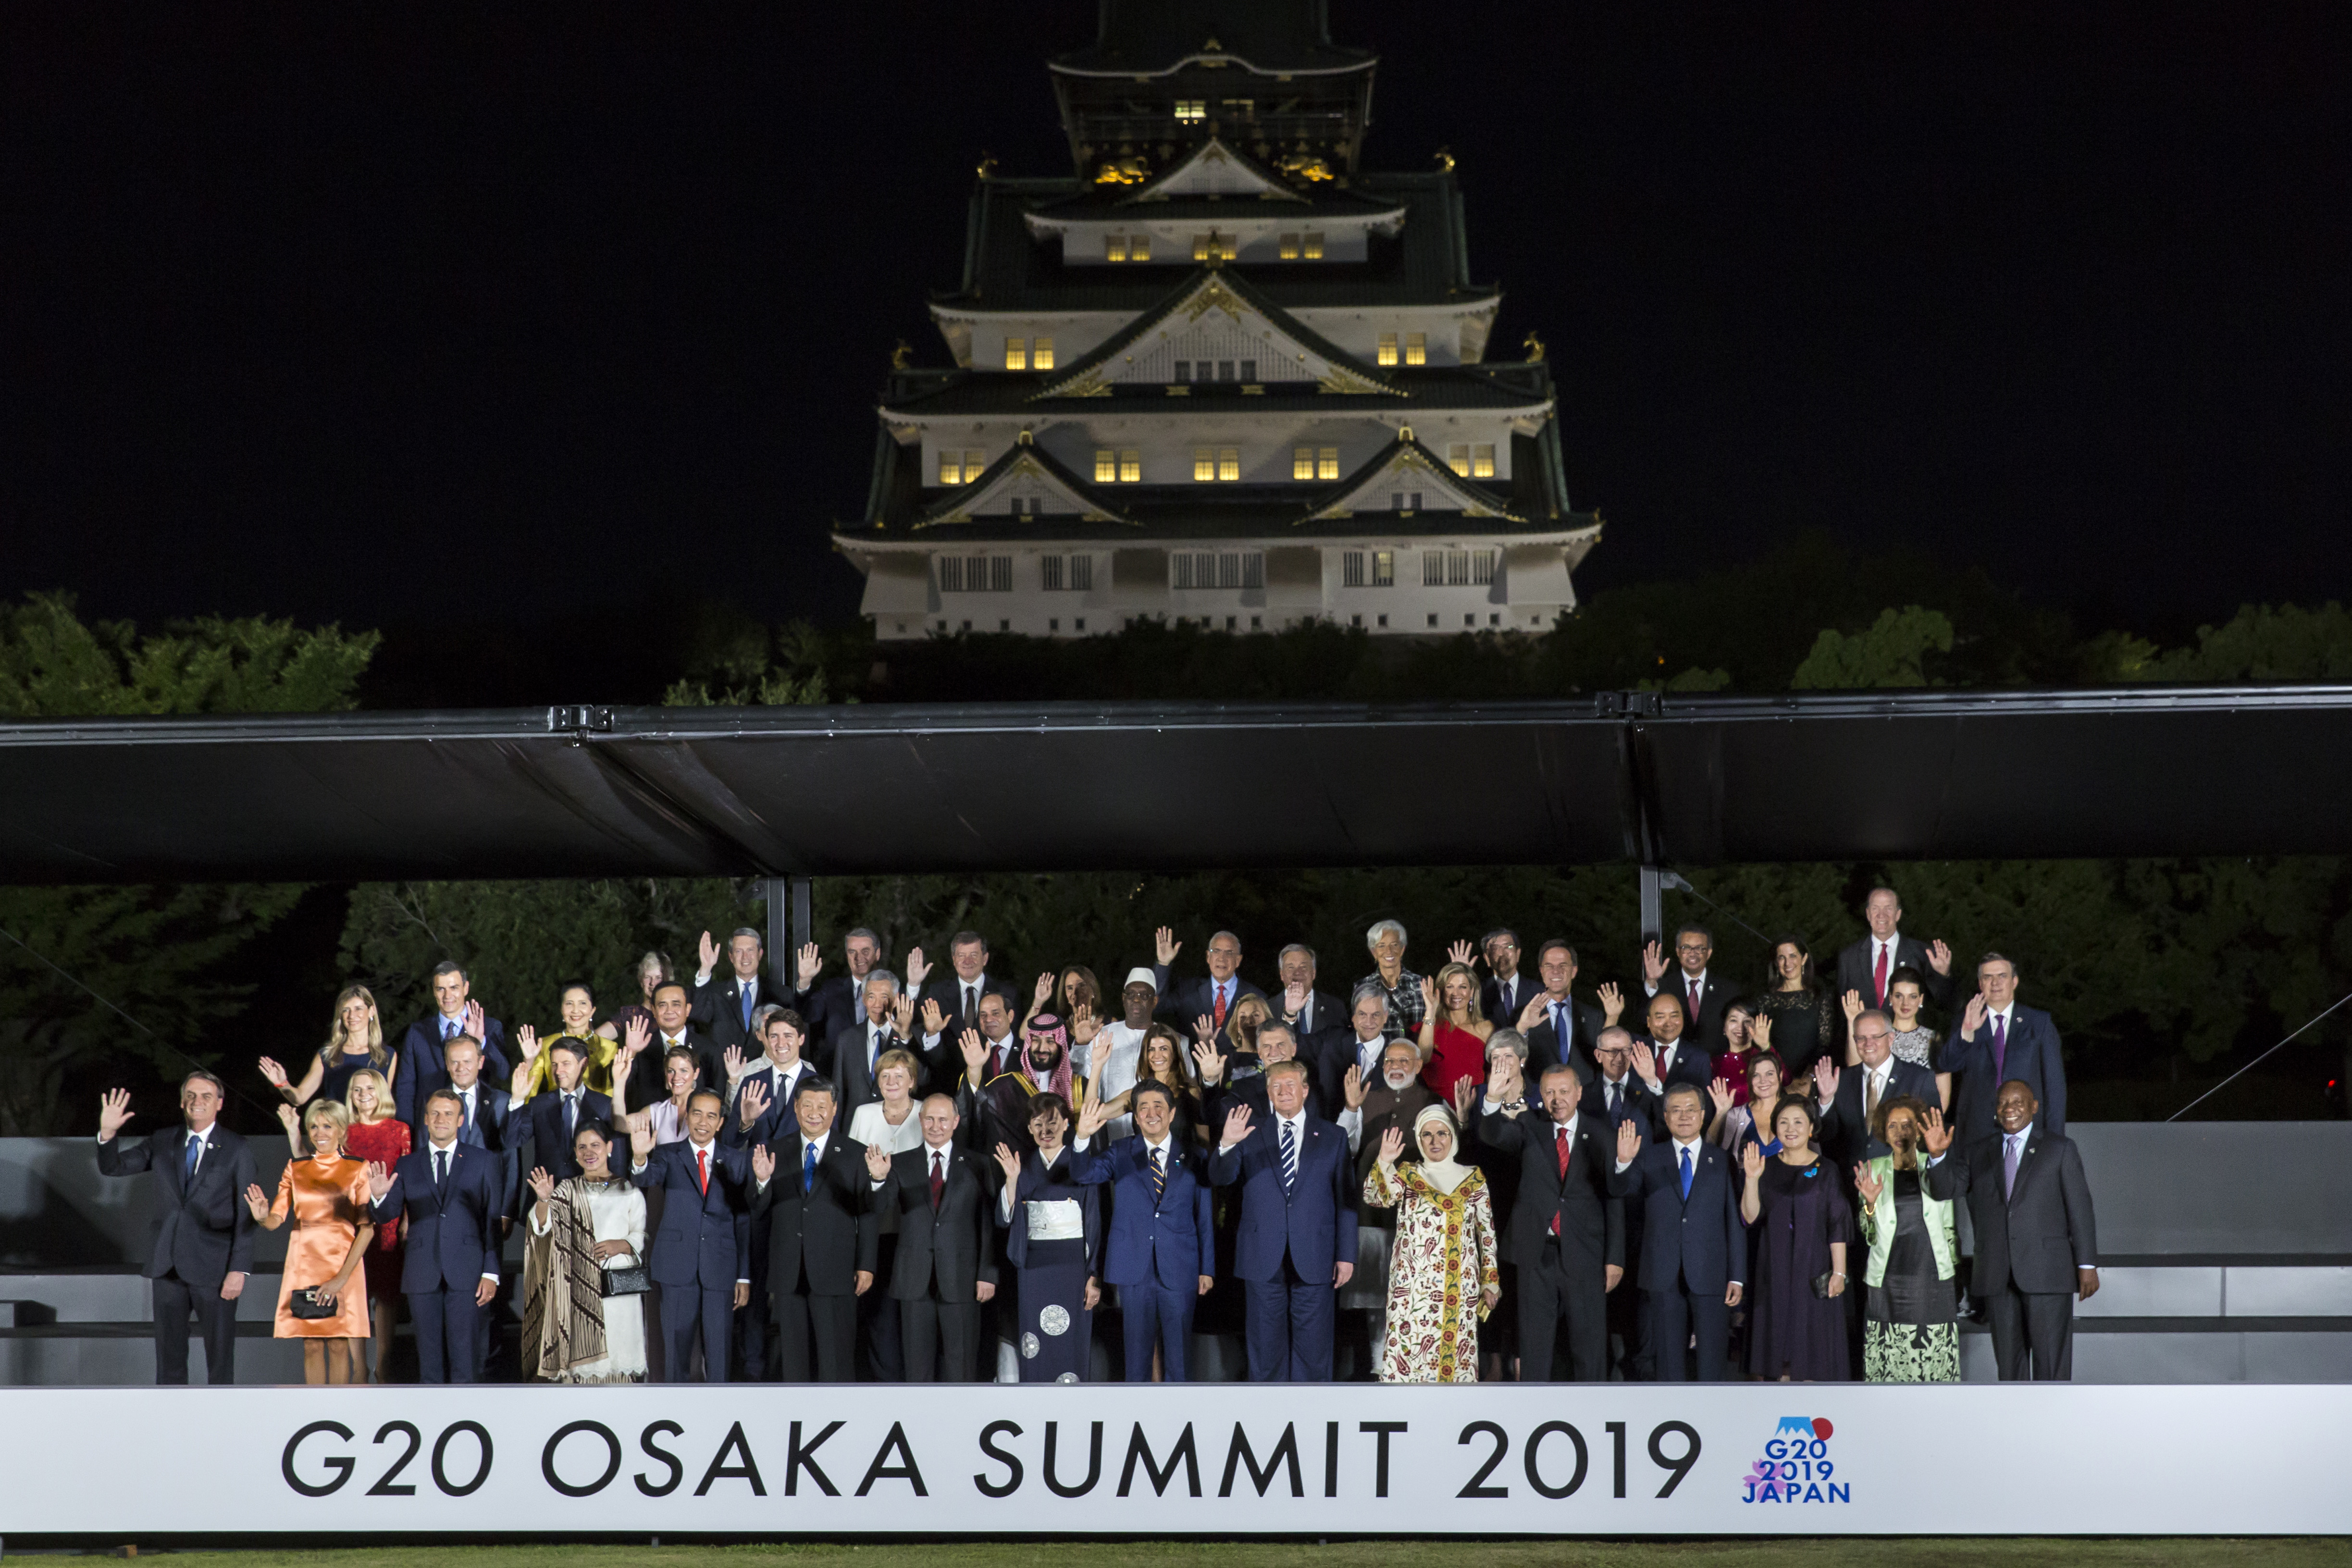 The G20 world leaders pose for a family photograph in front of Osaka Castle on June 28, 2019.